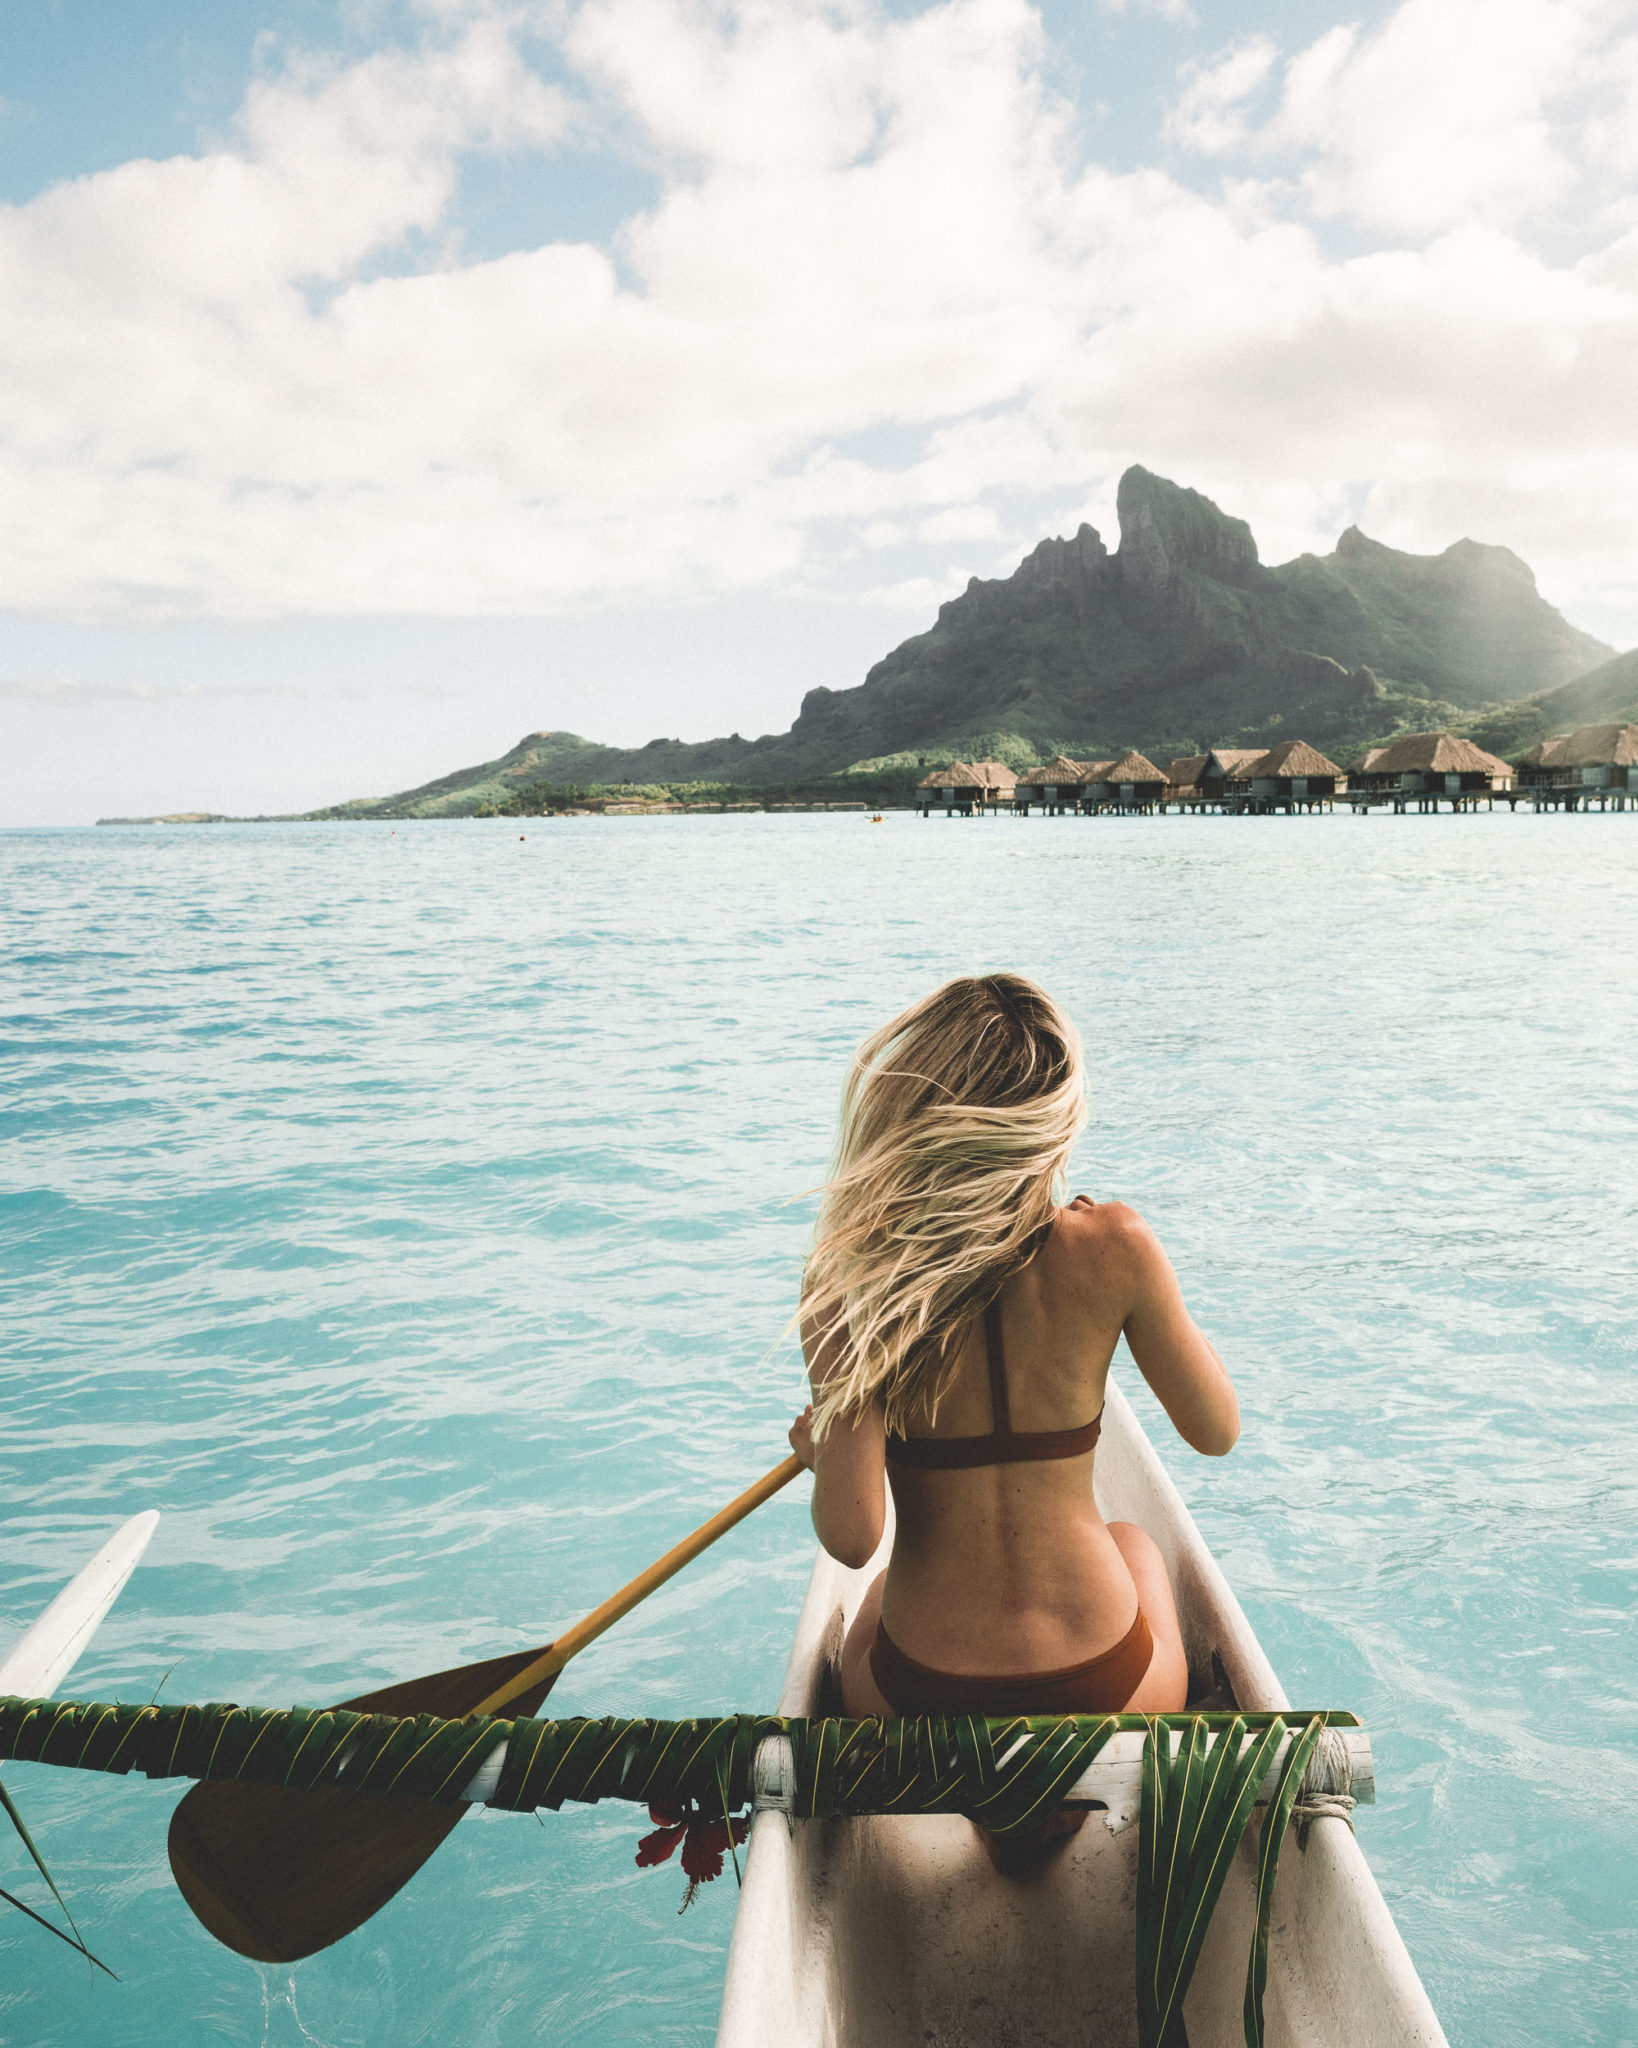 Canoeing at Four Seasons Bora Bora for our honeymoon via @finduslost